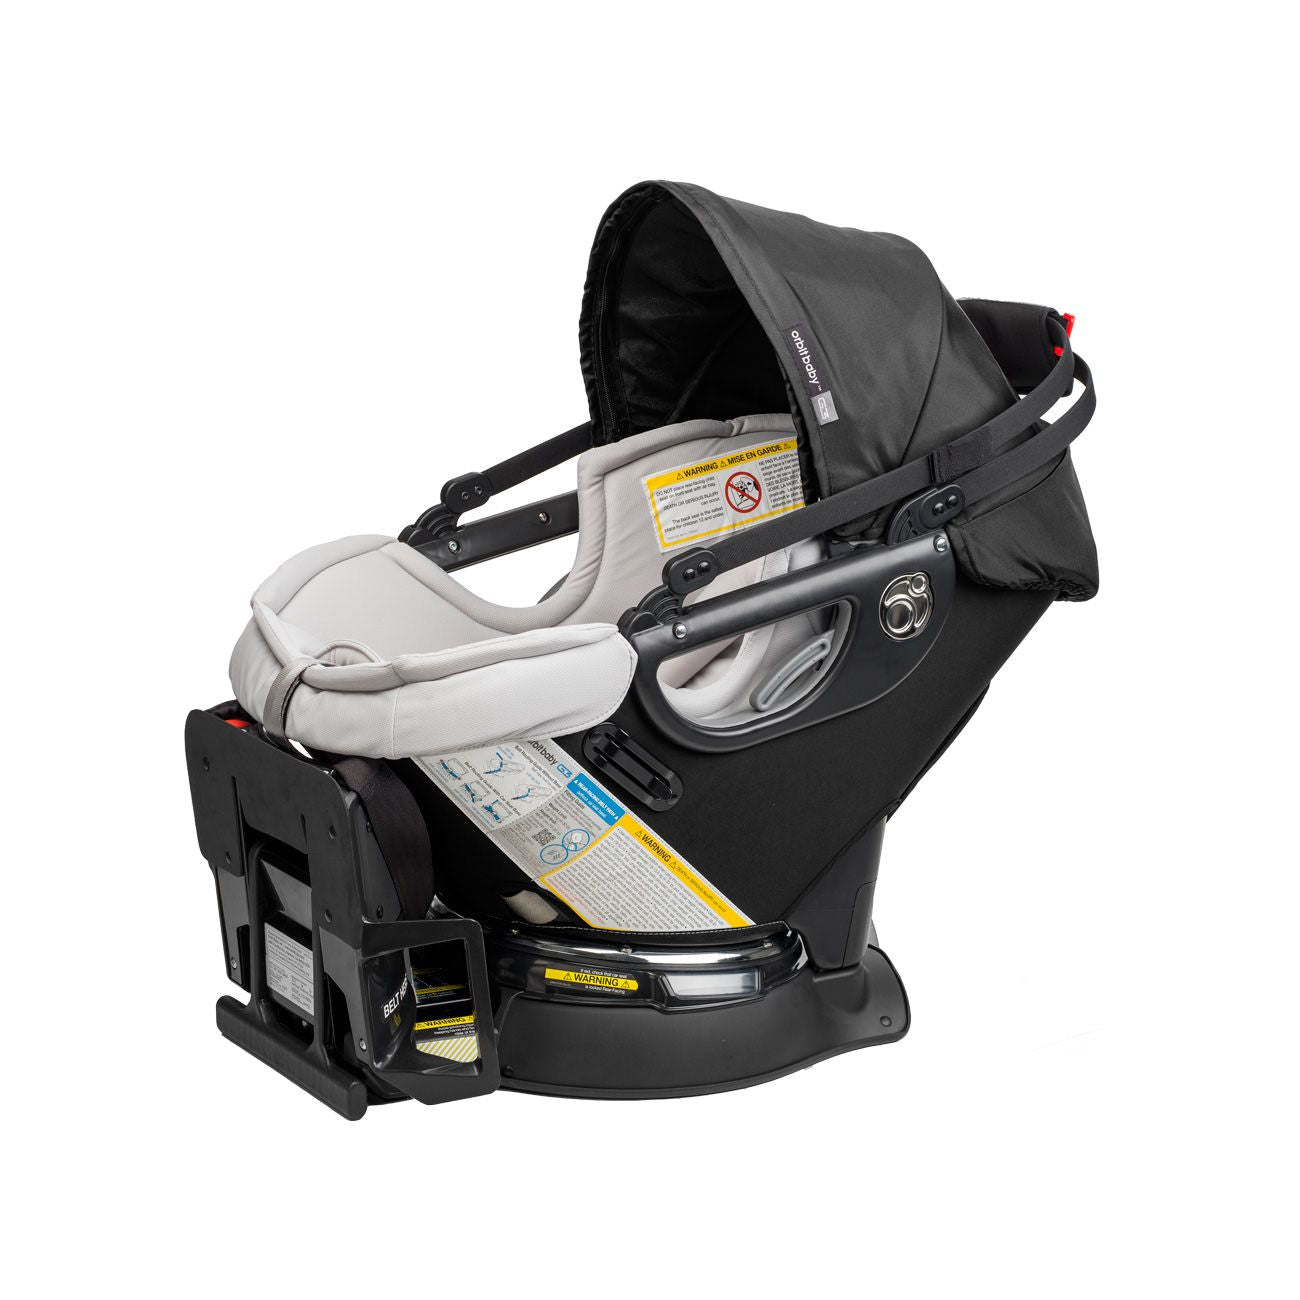 Car Seat, Baby Car Seat - Utility For Infants